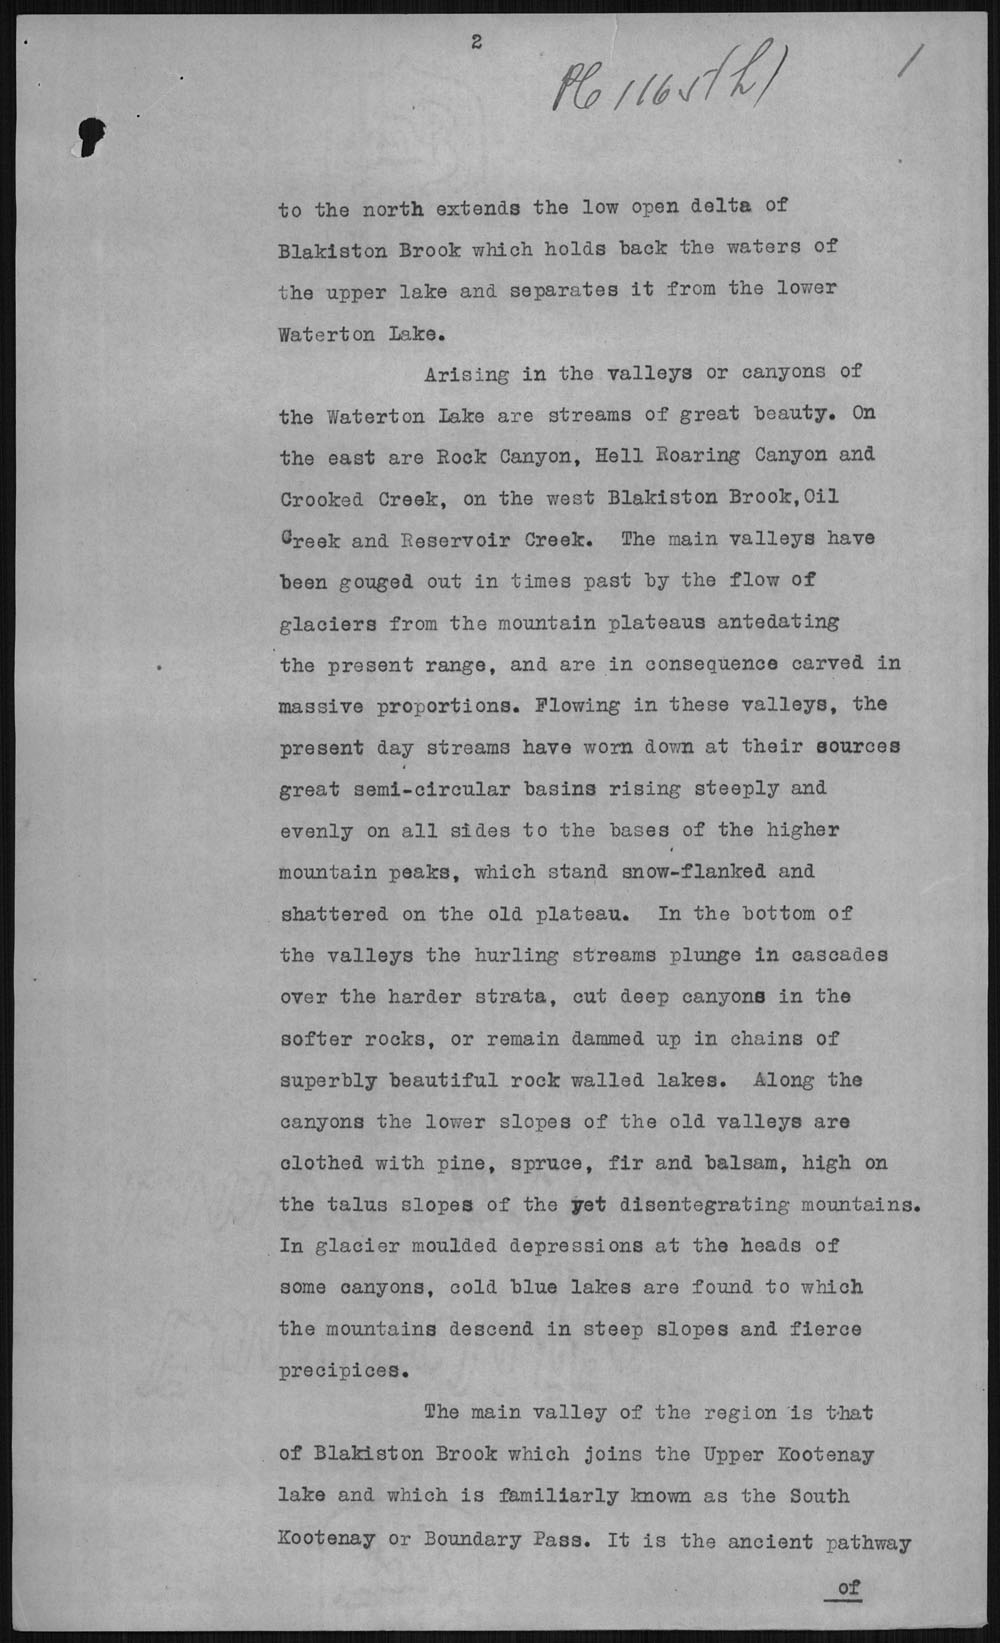 Digitized page of Orders in Council for Image No.: e010877259-v8